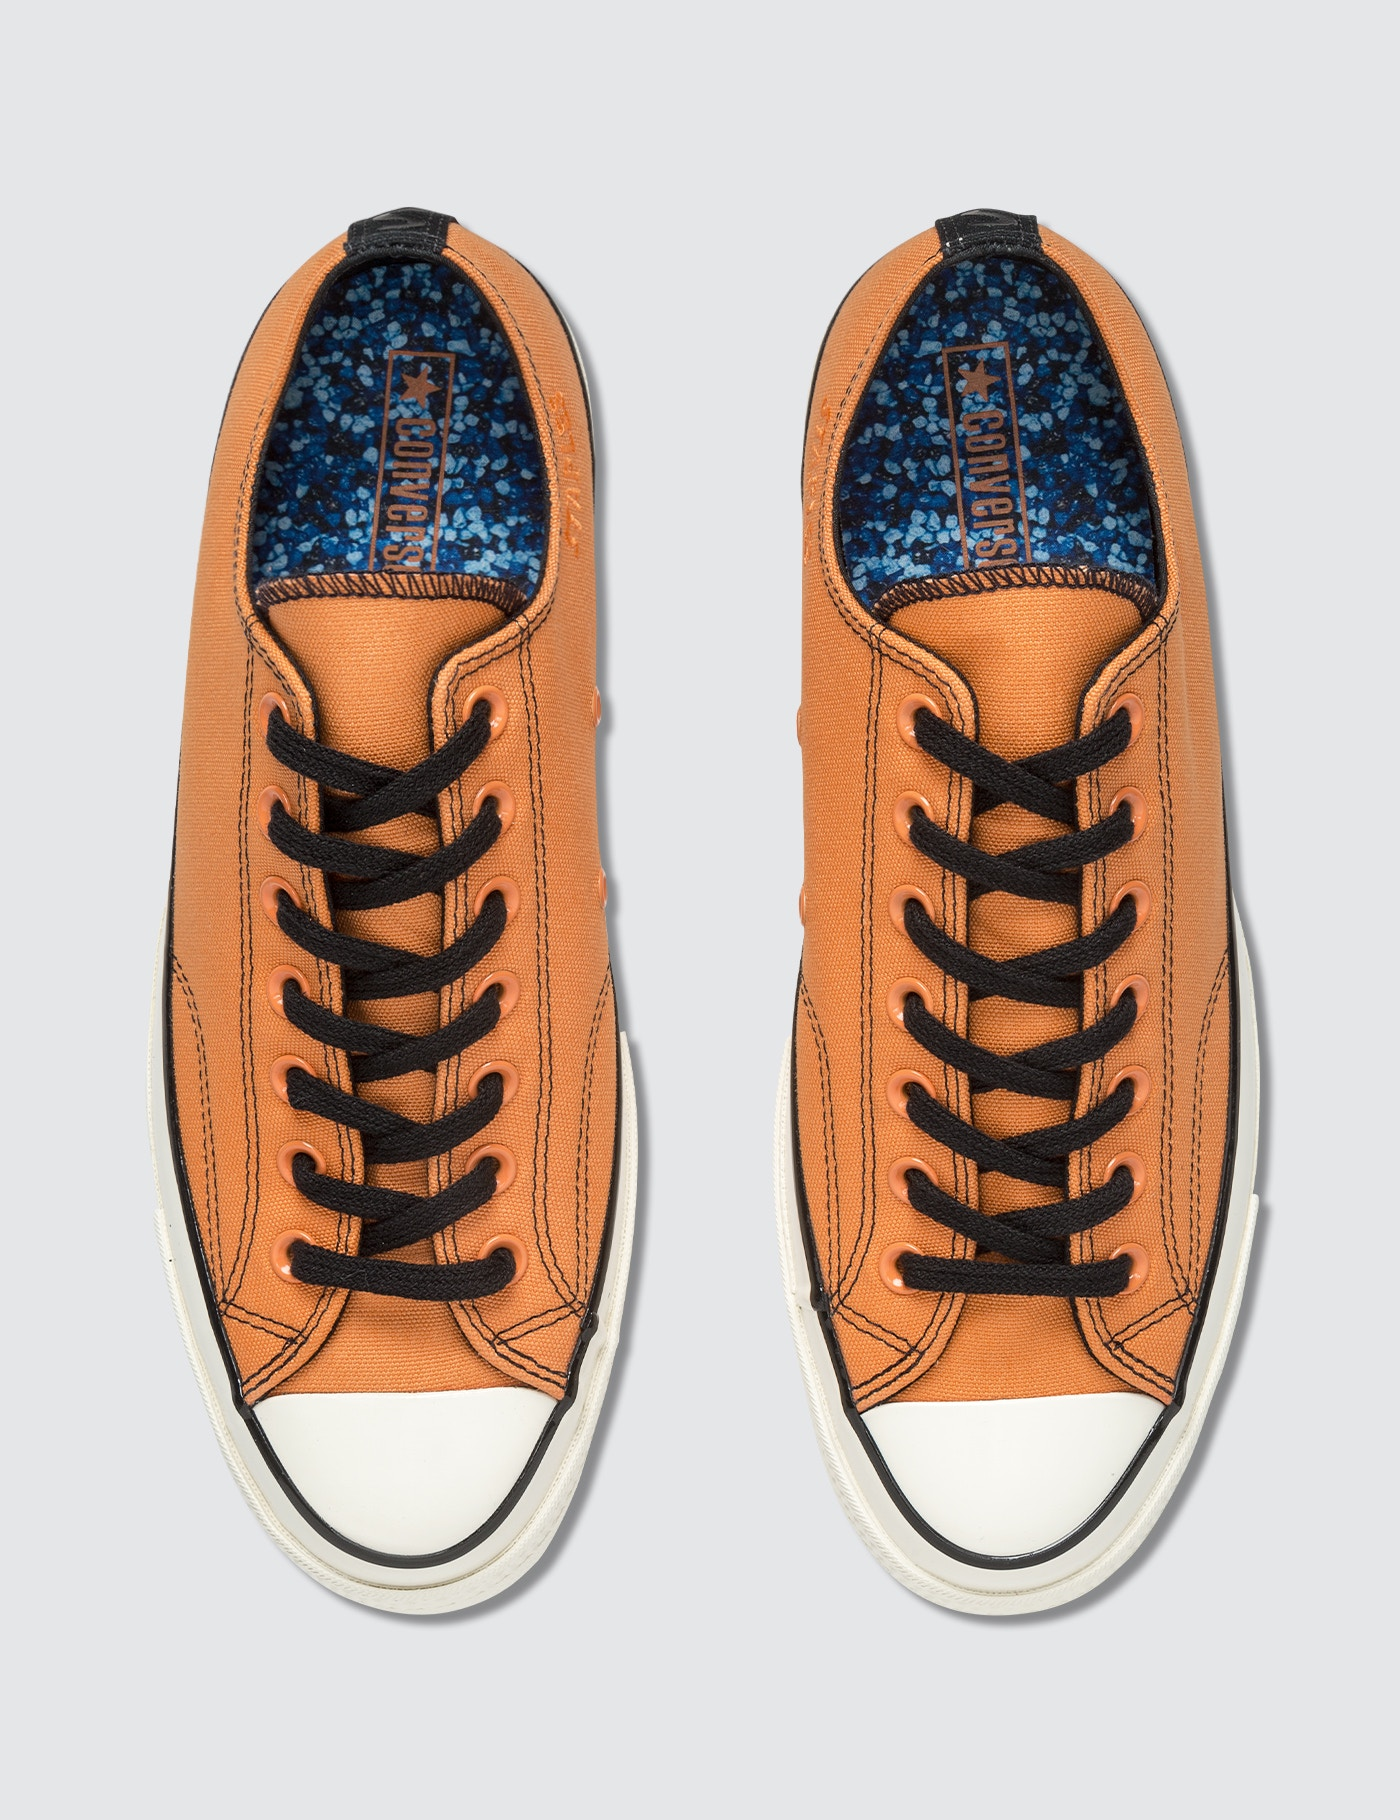 X Staples Star Chuck Taylor Vince All OxConverse 70 USzMpV